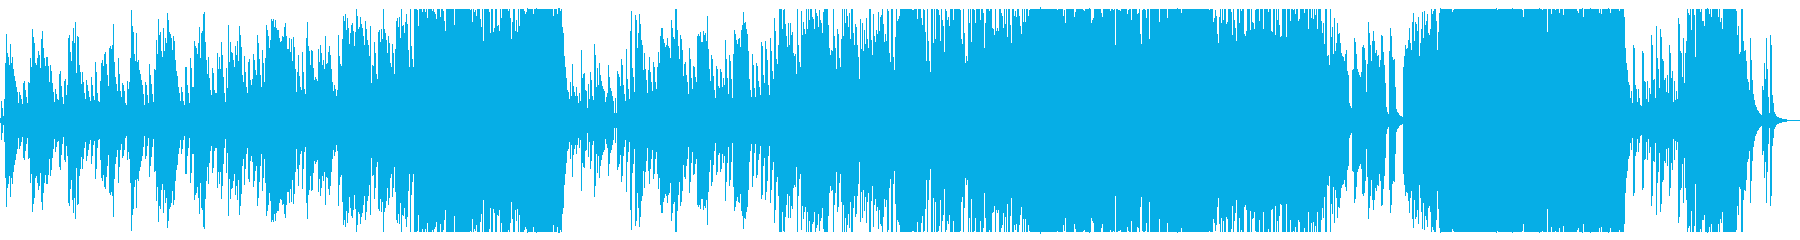 Graduation song of the sunset scene's reproduced waveform